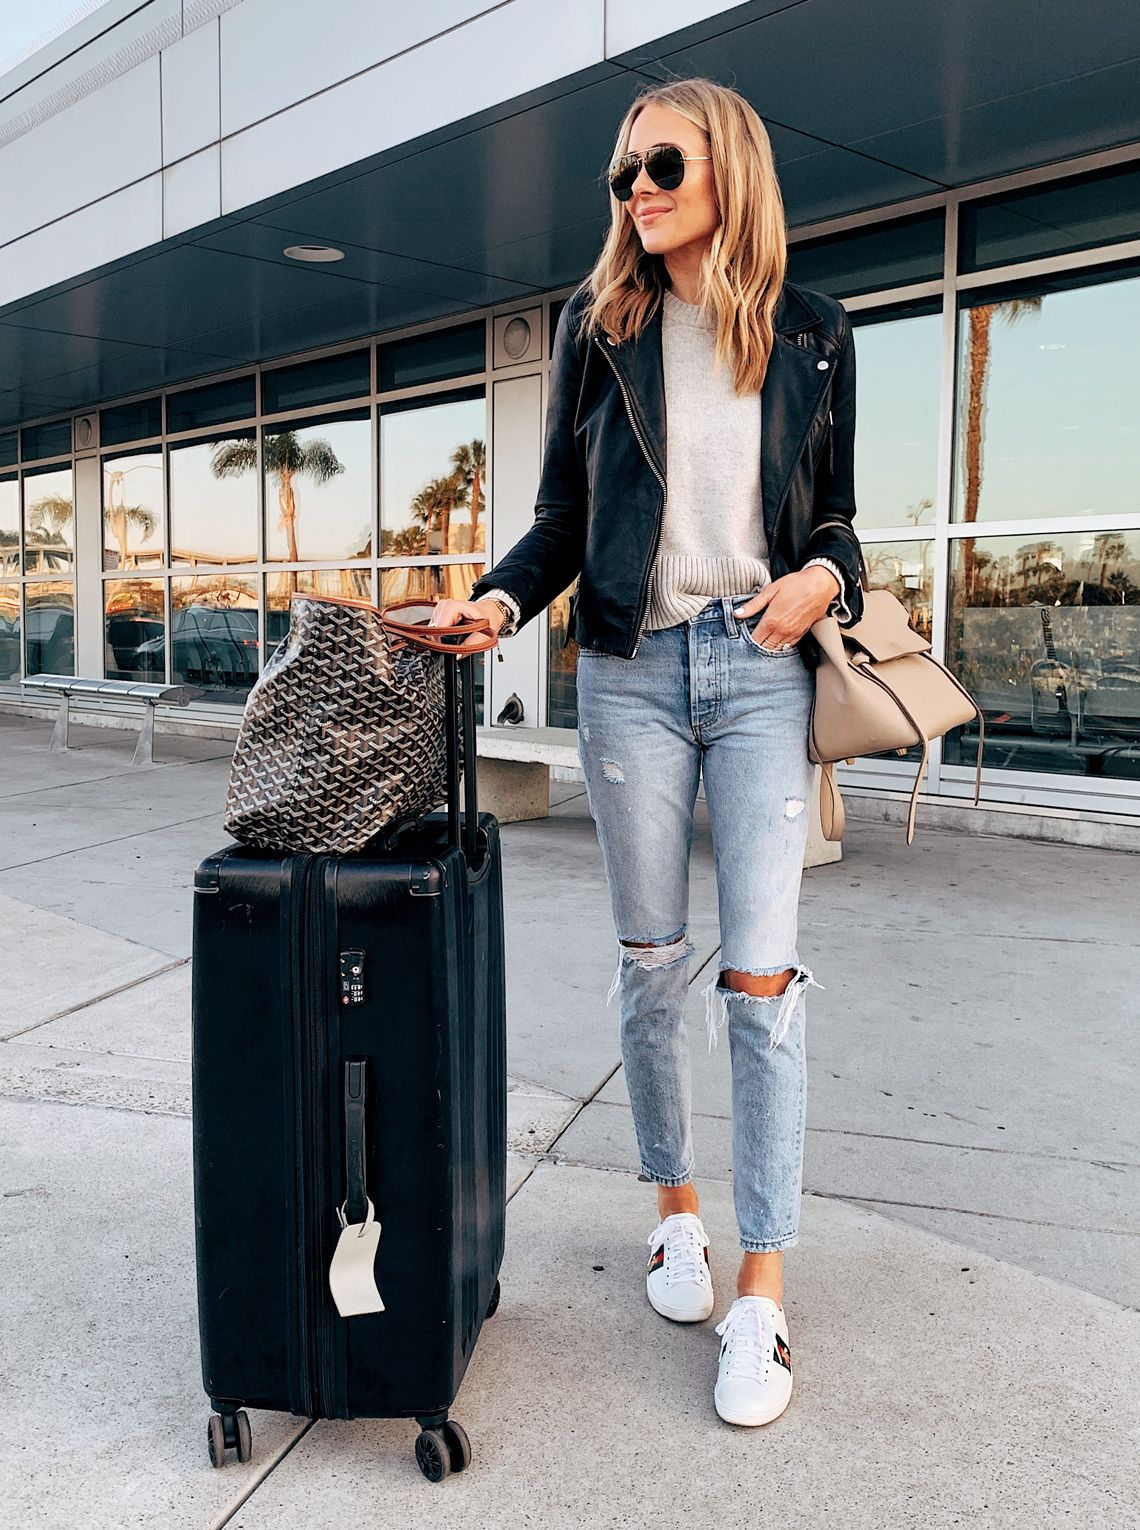 Ripped Jeans Gucci Ace Sneakers Airport